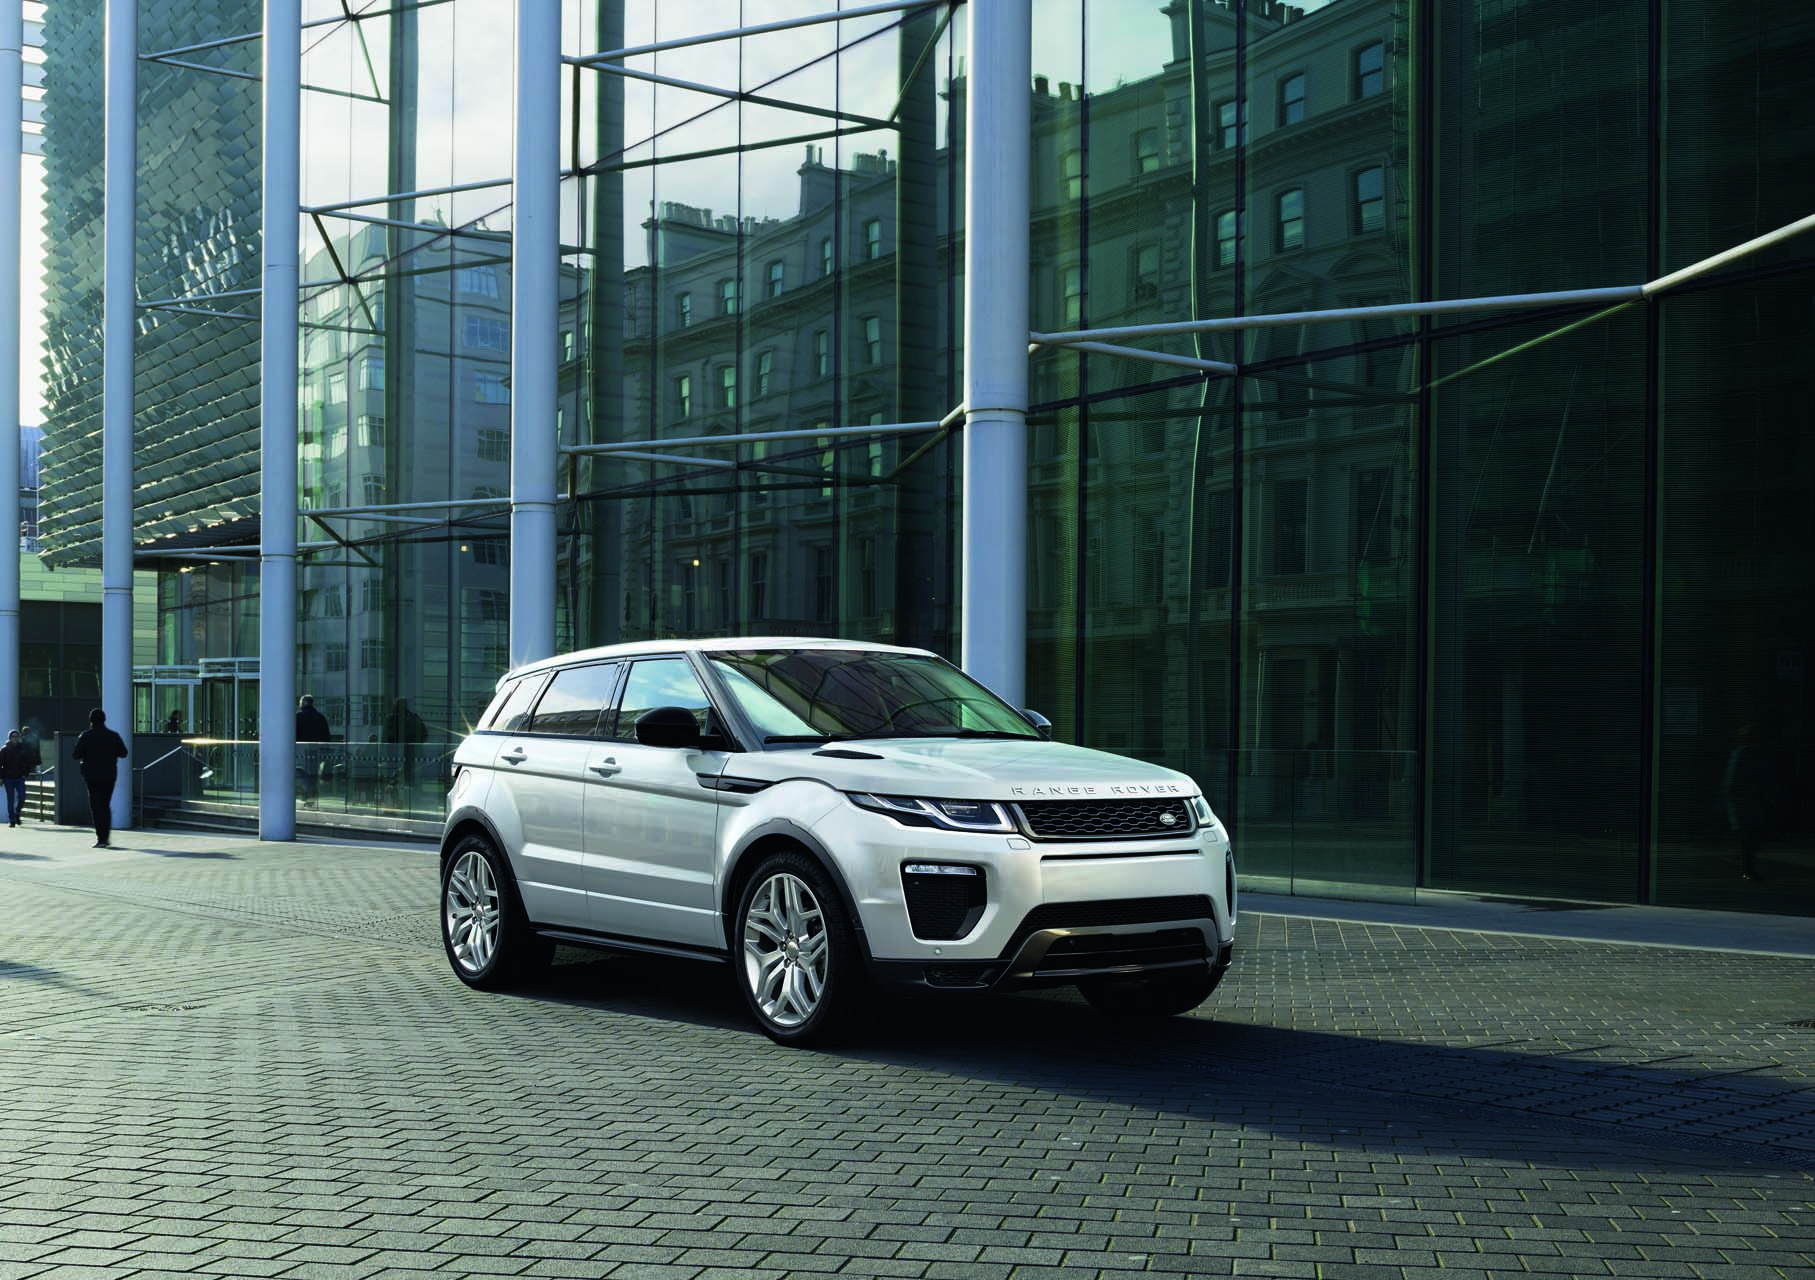 2018 Land Rover Range Rover Evoque Safety Review and Crash Test